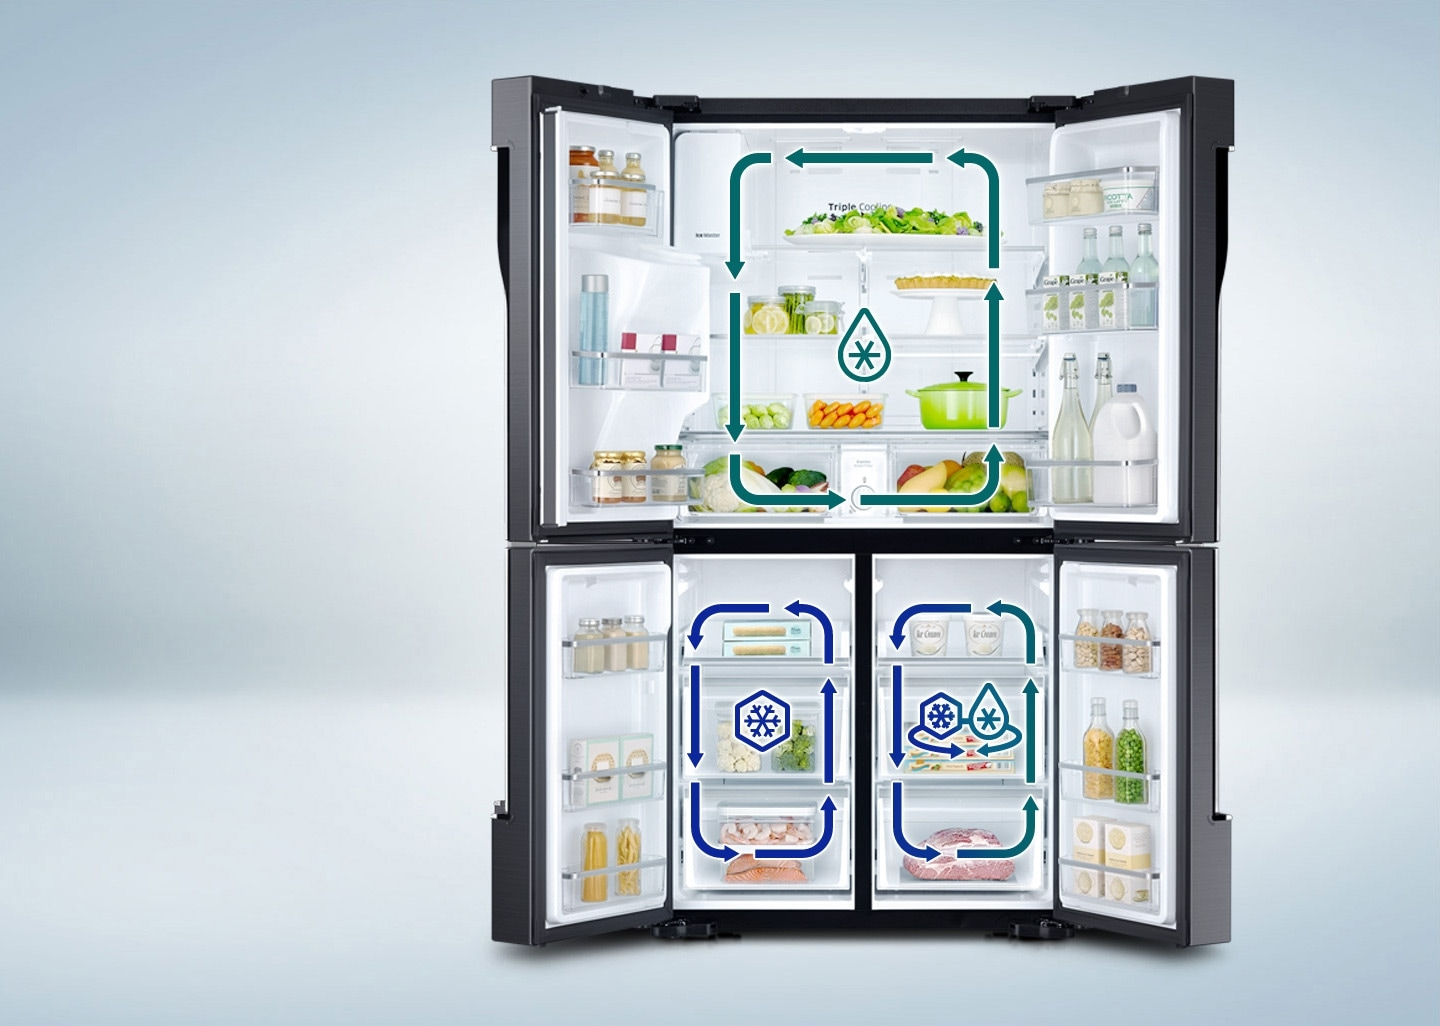 Innovative cooling for extra freshness